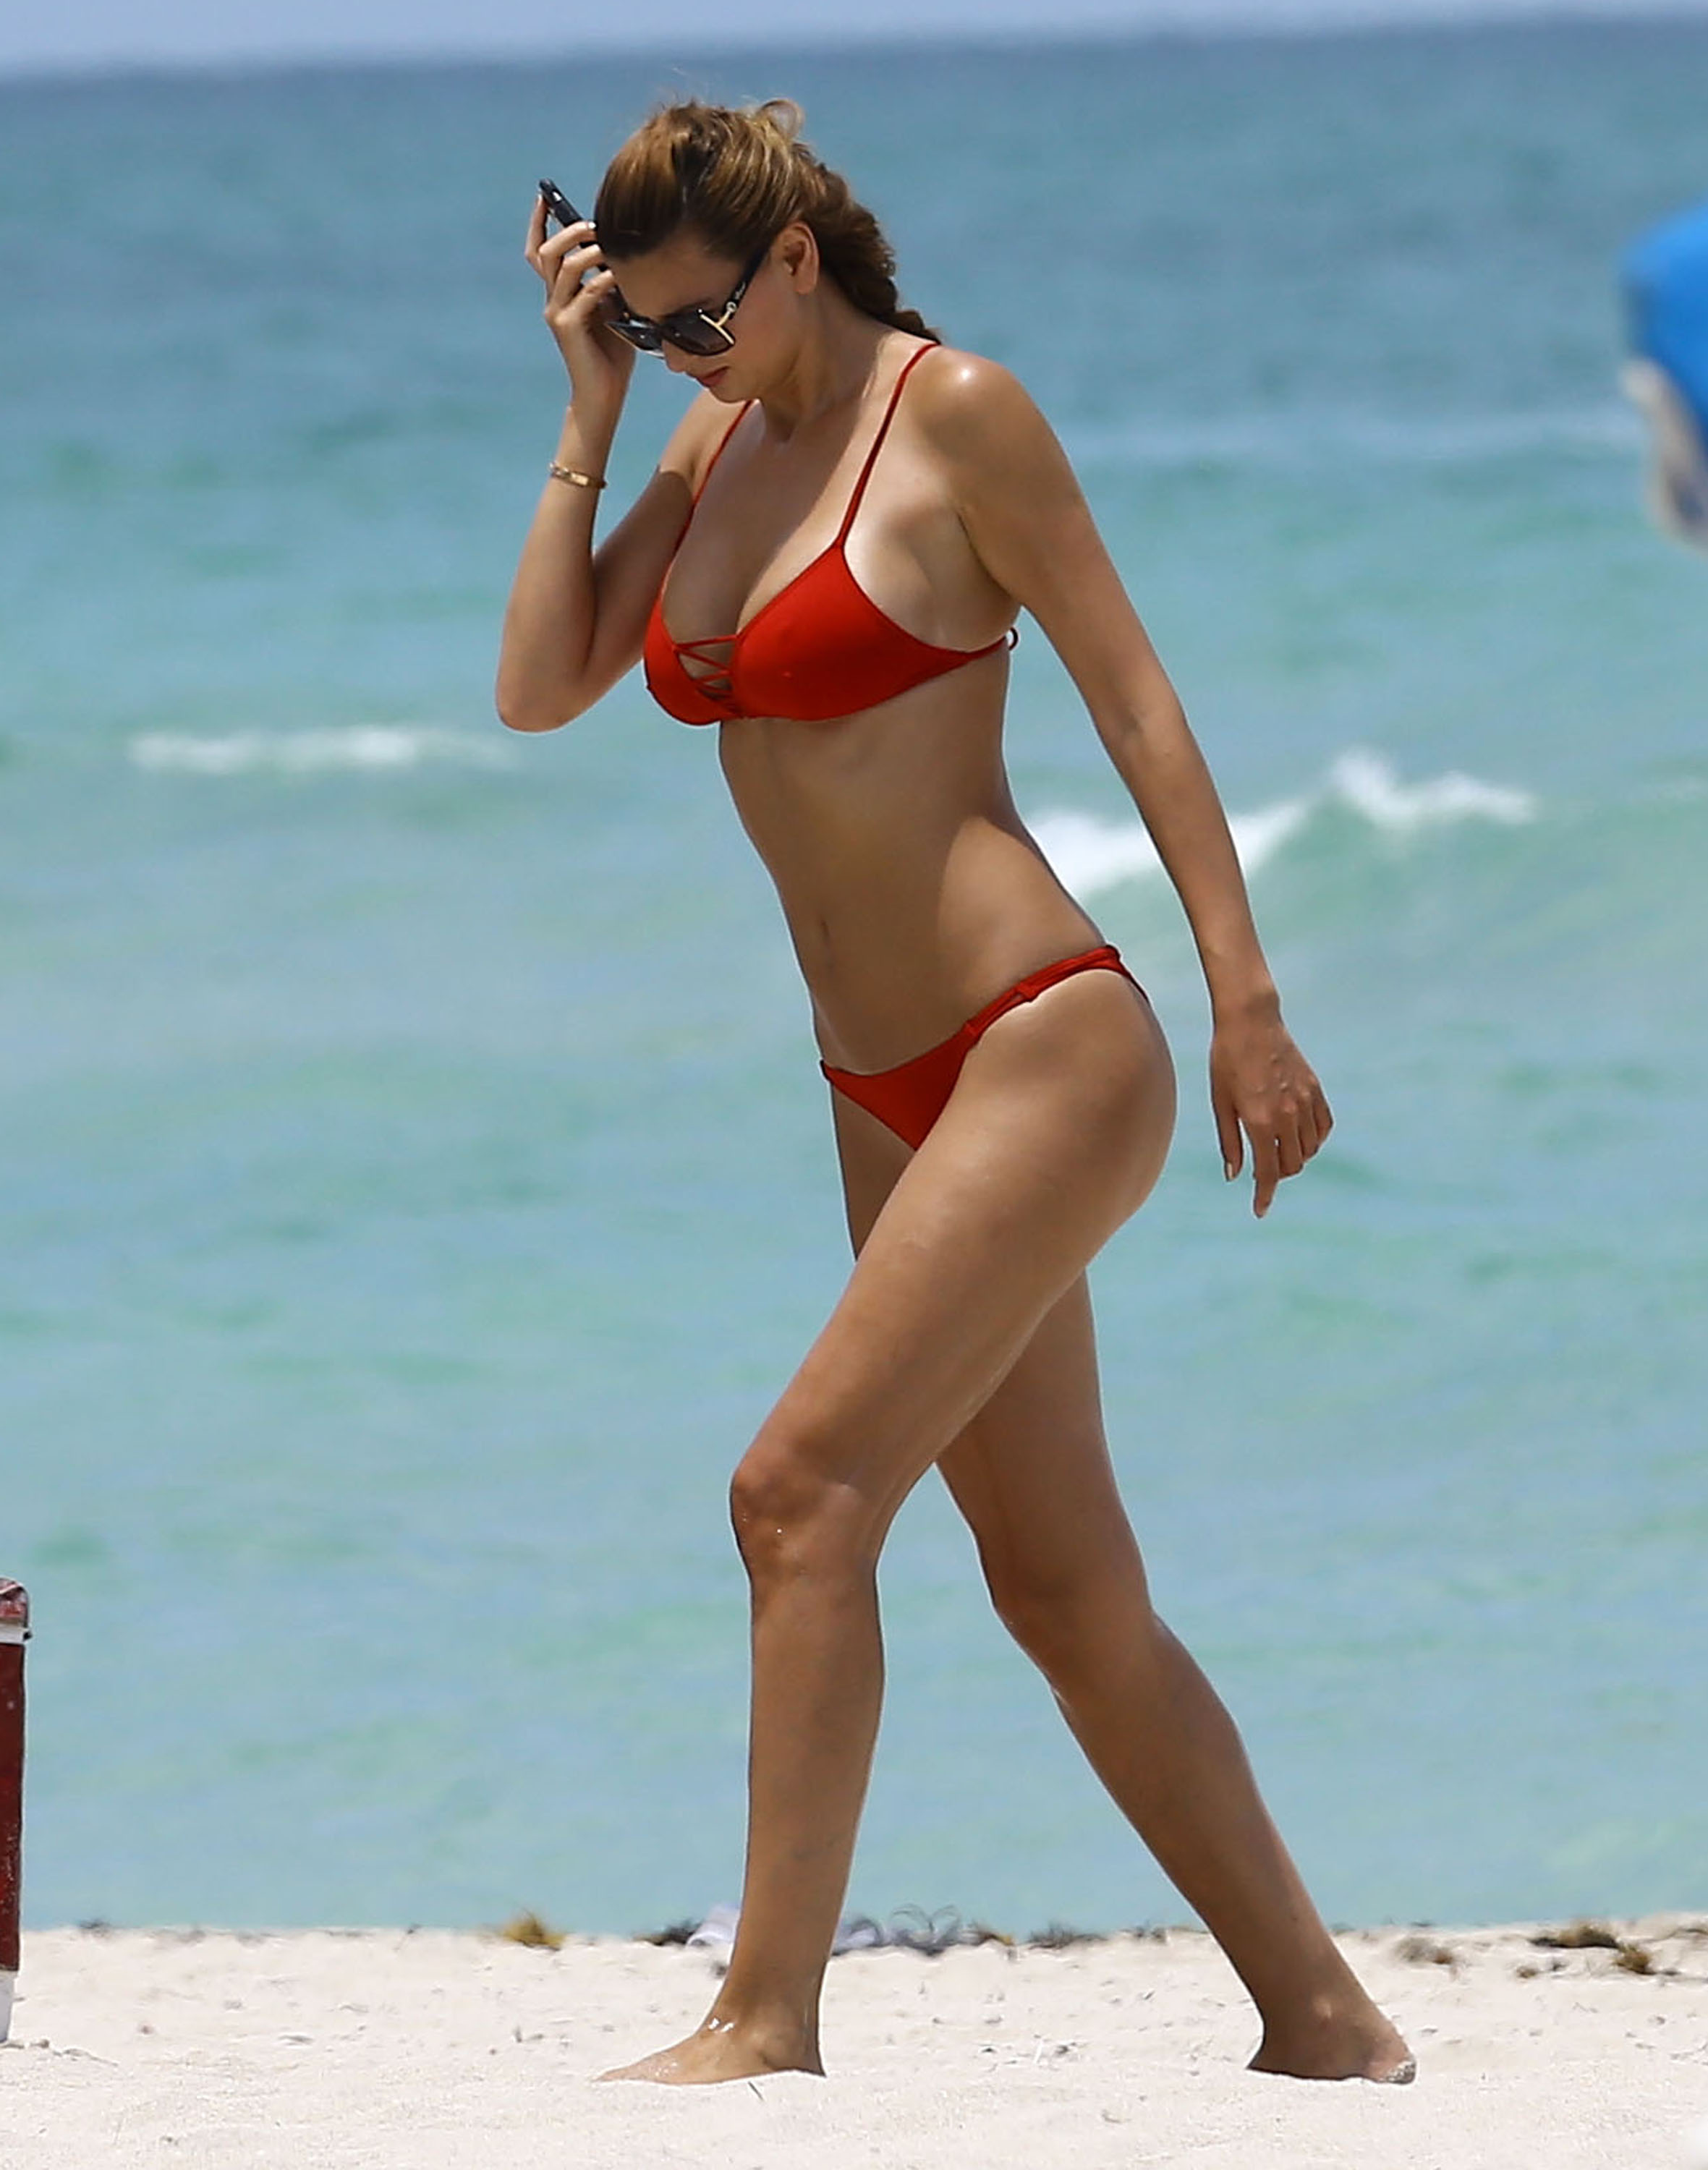 52118749 Romanian socialite Ramona Gabor enjoys a day on the beach in Miami, Florida on July 11, 2016. Ramona showed off her toned body in a red bikini. FameFlynet, Inc - Beverly Hills, CA, USA - +1 (310) 505-9876